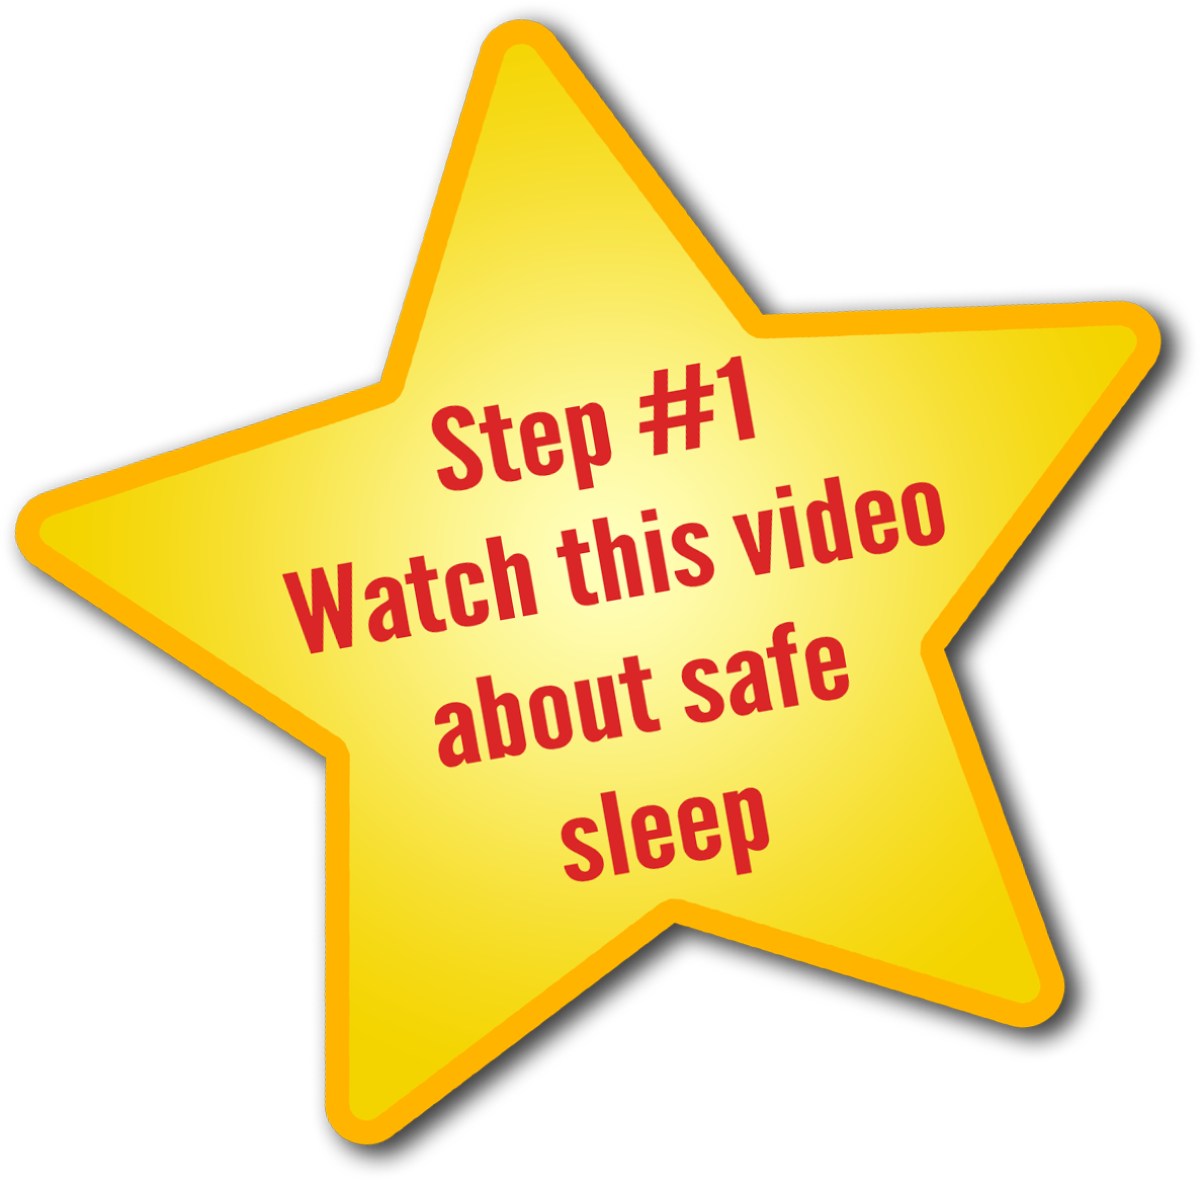 Step 1 - Watch this video about safe sleep